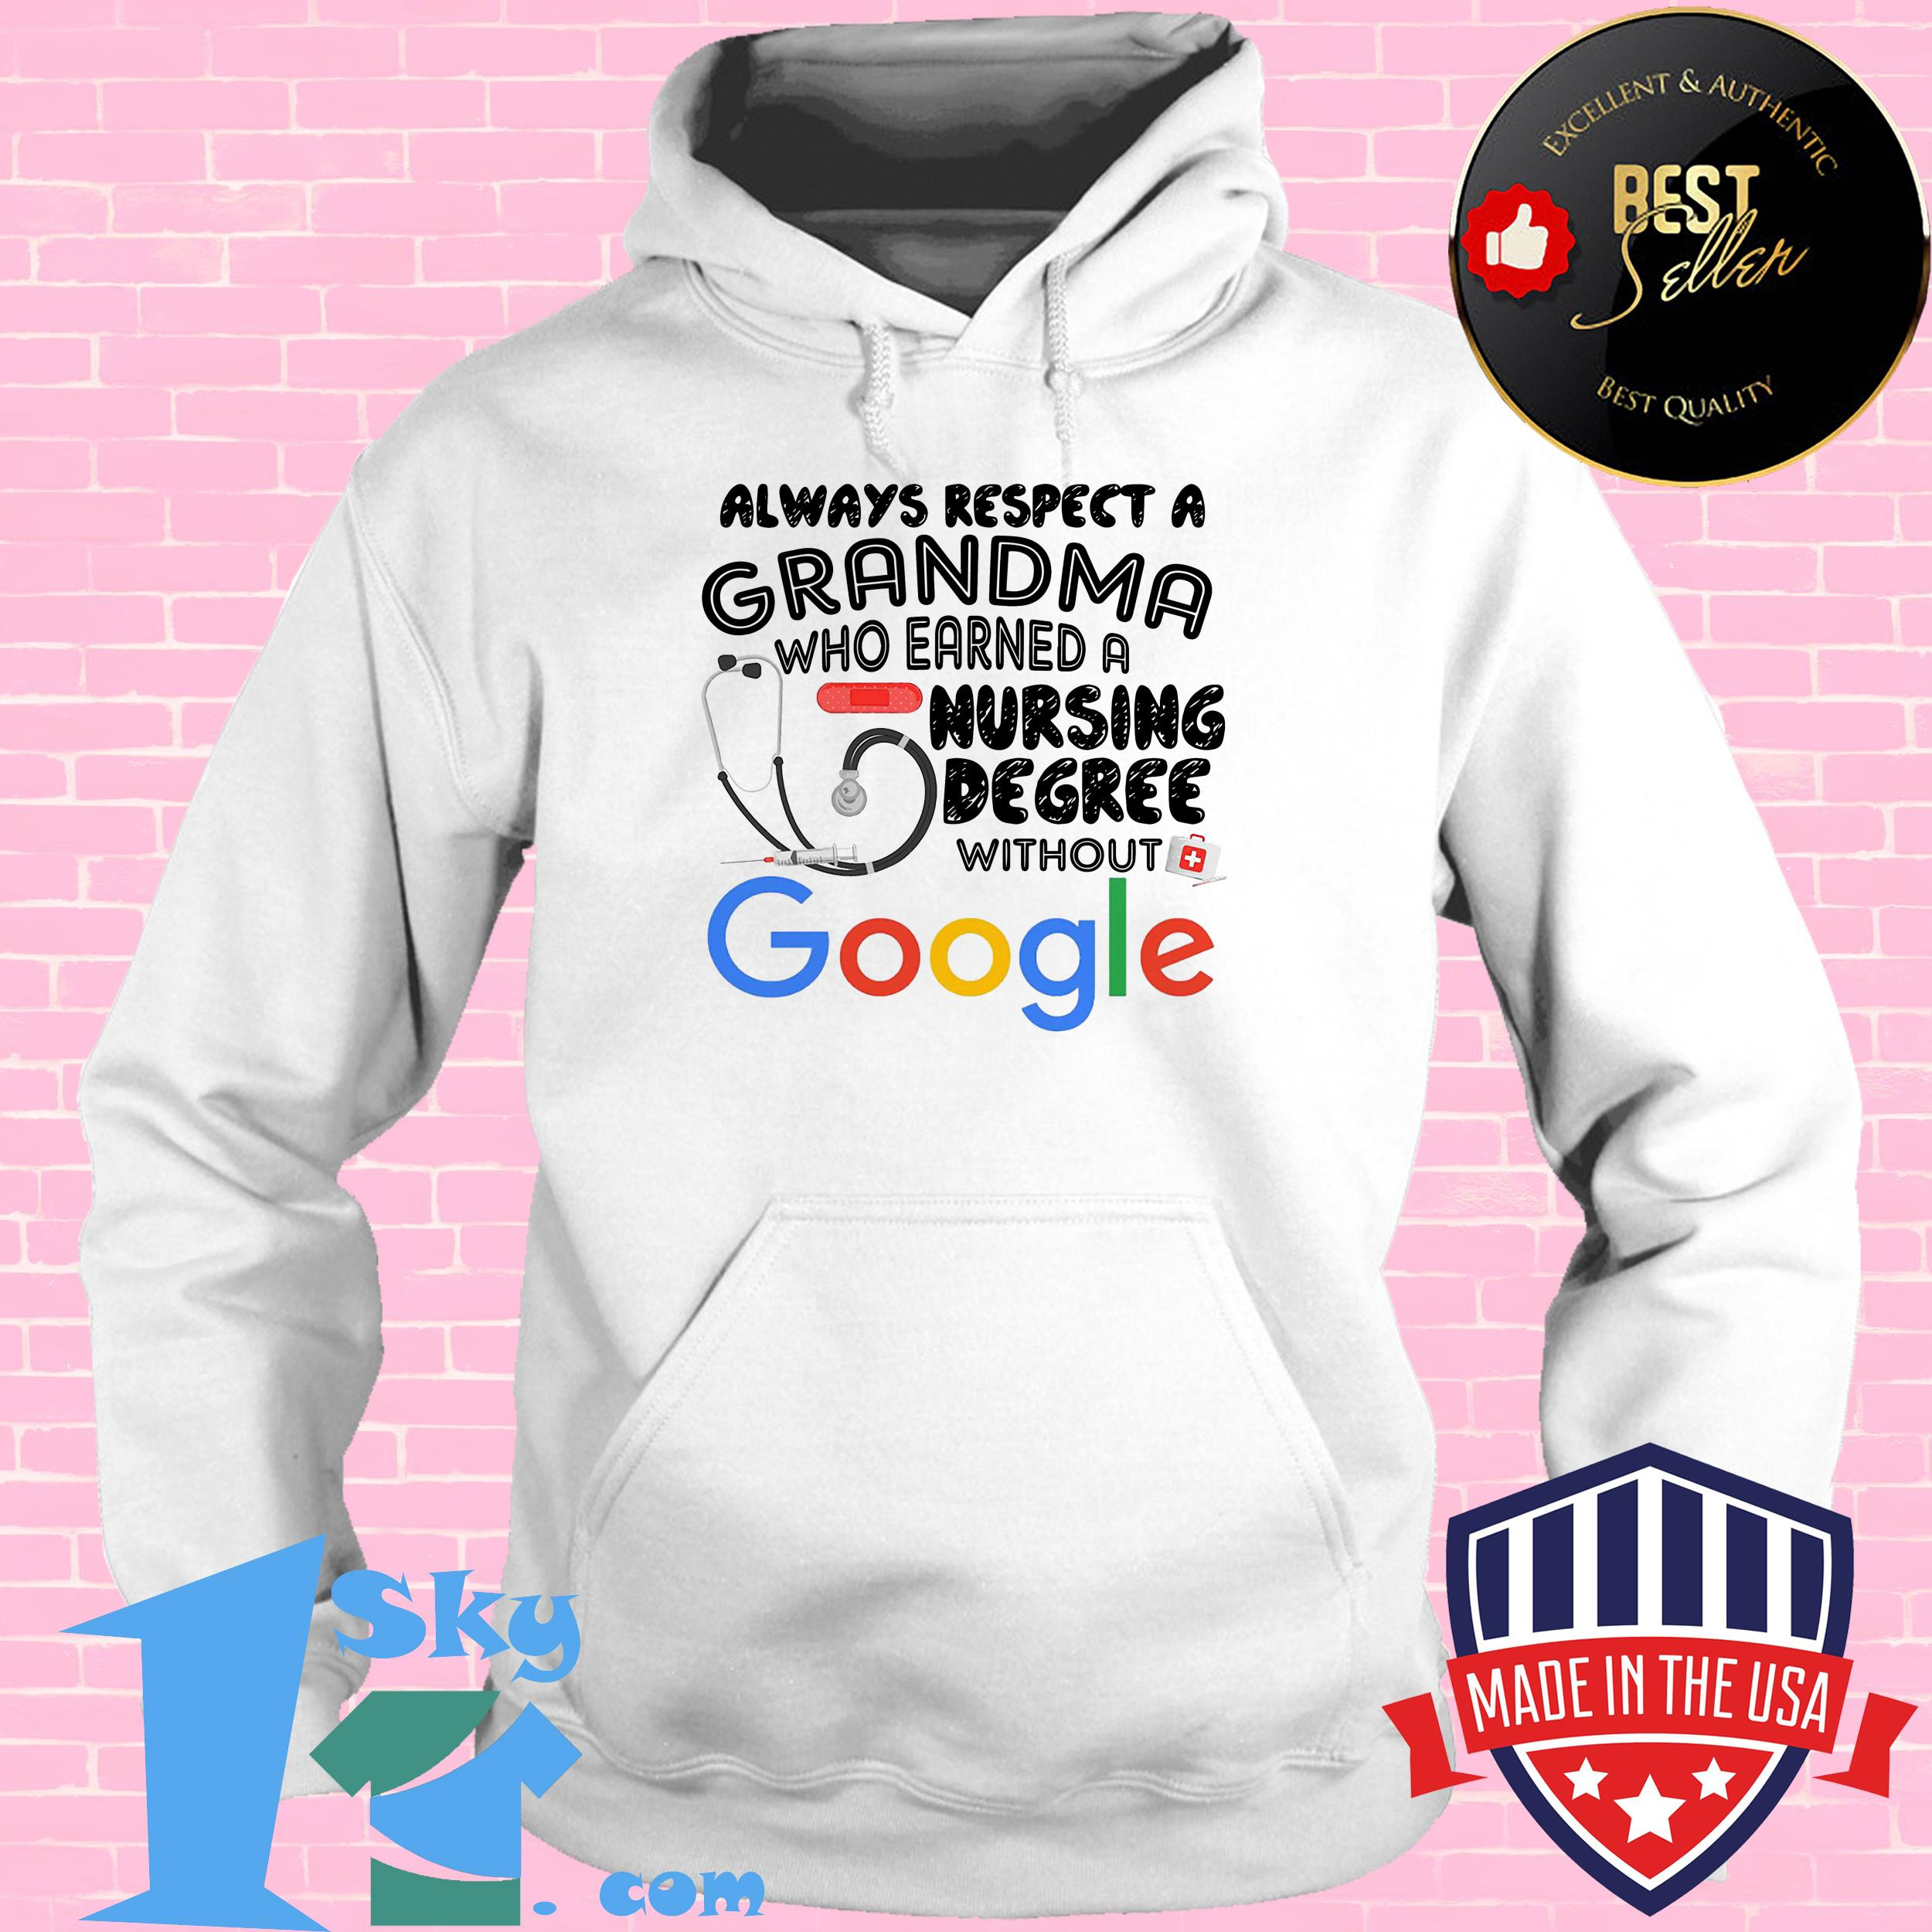 always respect a grandma who earned a nursing degree without google hoodie - Always Respect A Grandma Who Earned A Nursing Degree Without Google Shirt